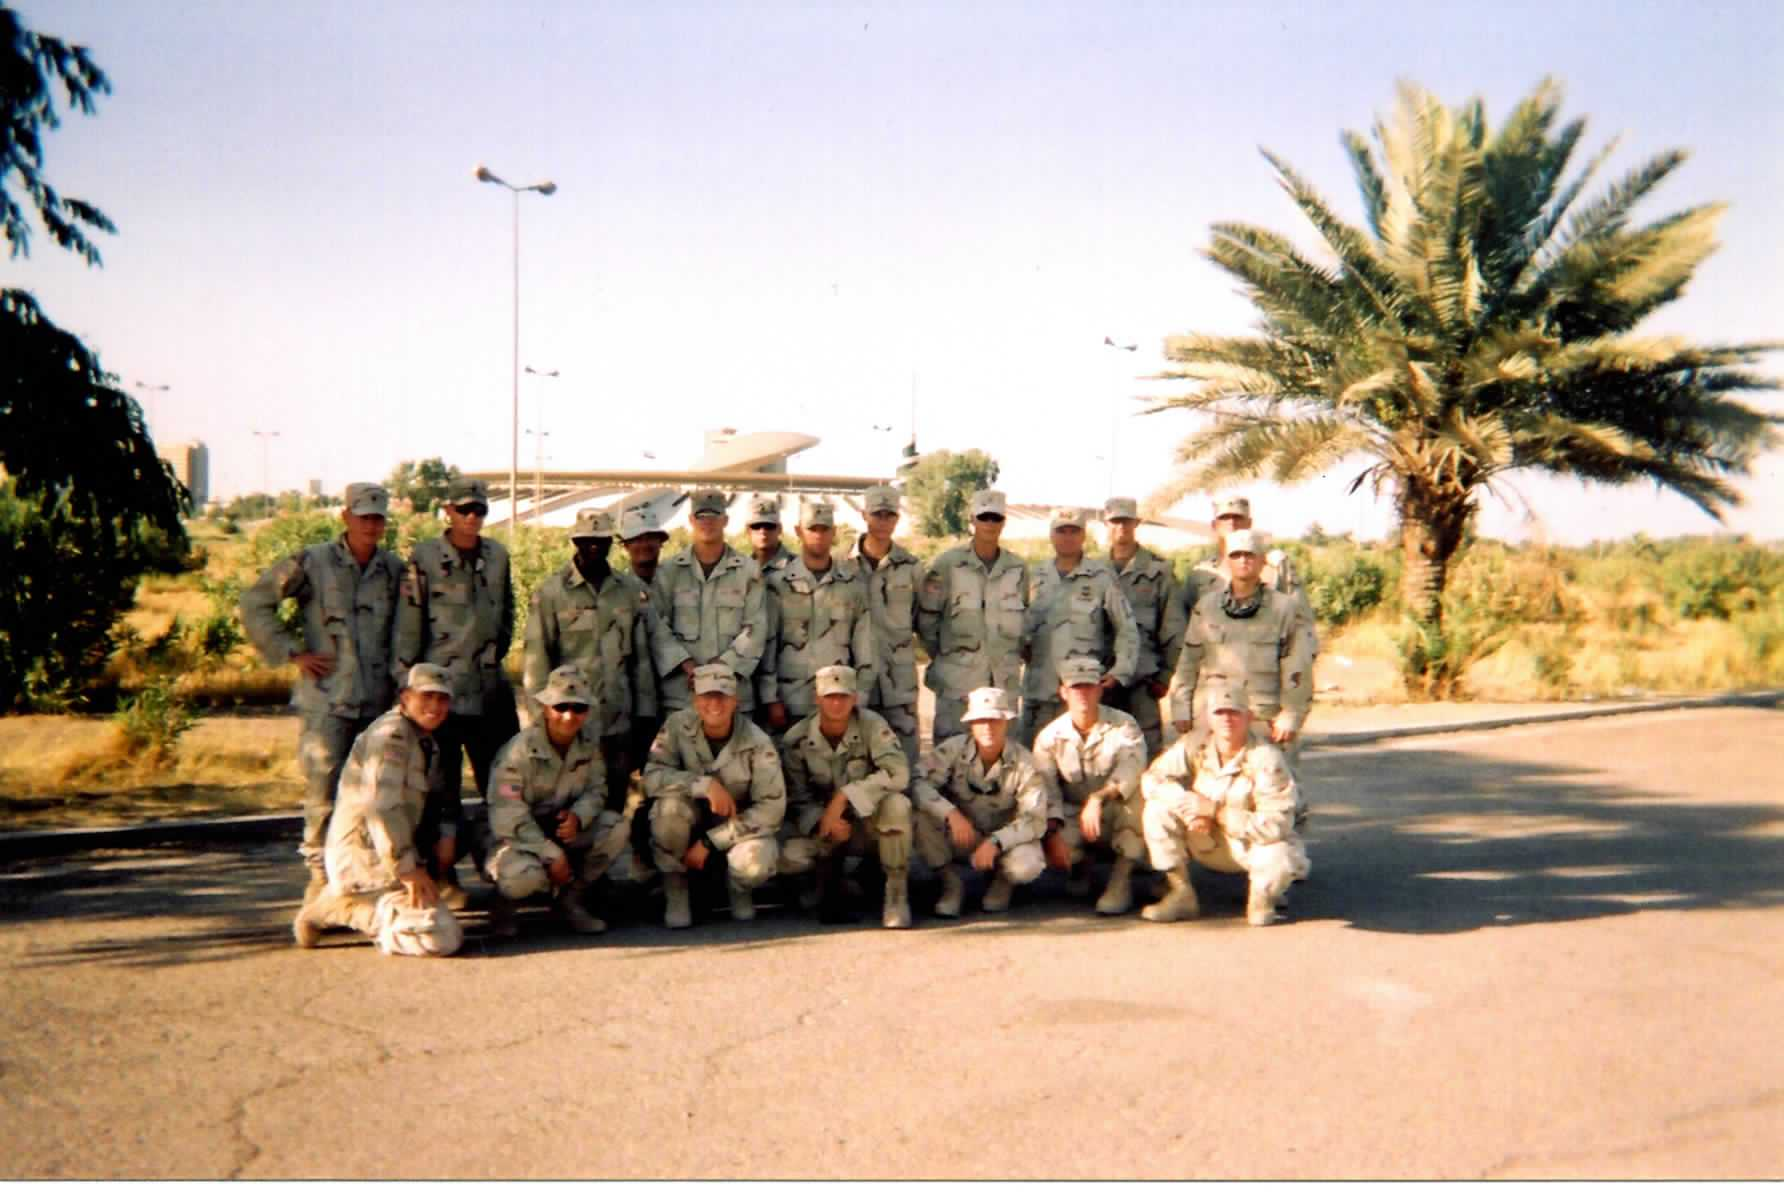 Kosovych and fellow soldiers in Baghdad's Green Zone